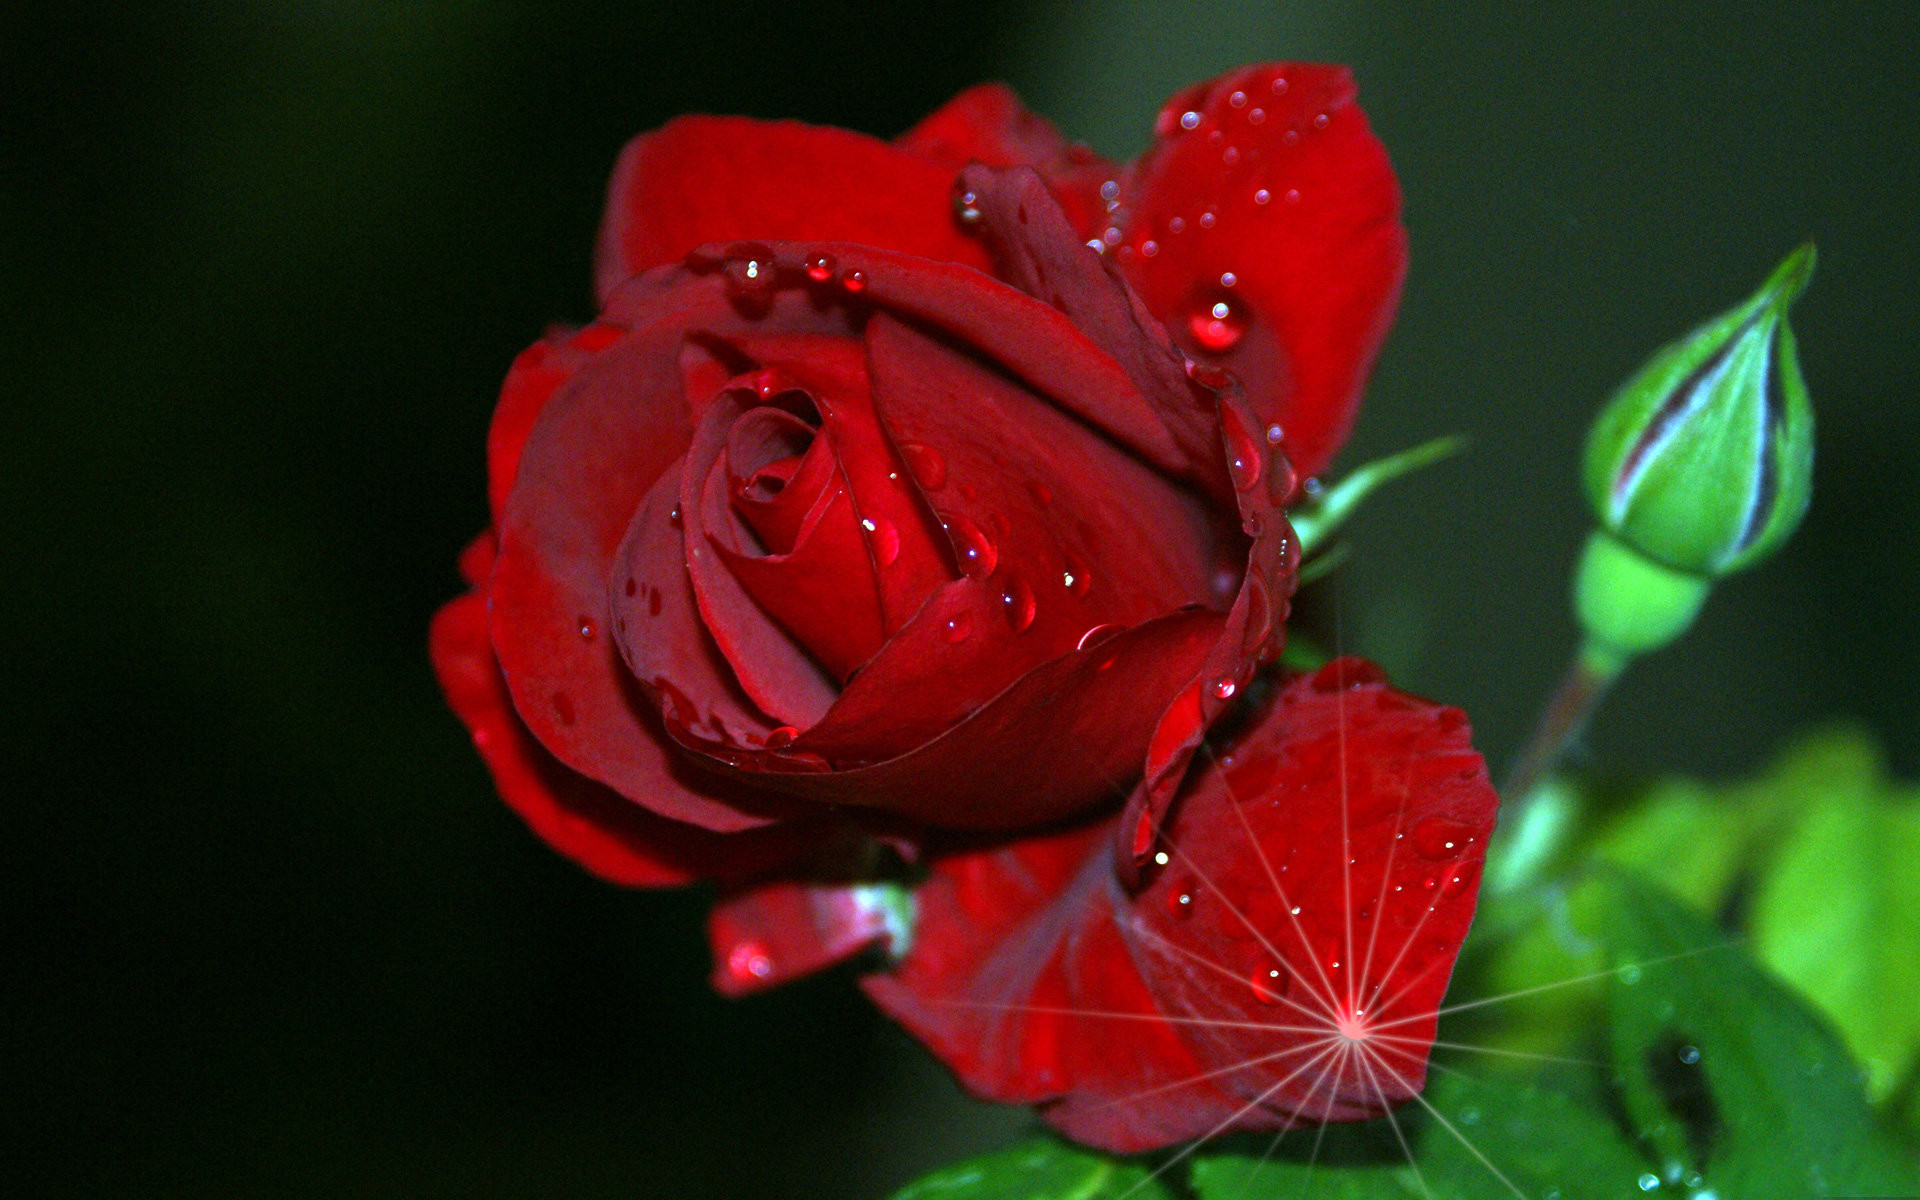 1920x1200 Red rose collected